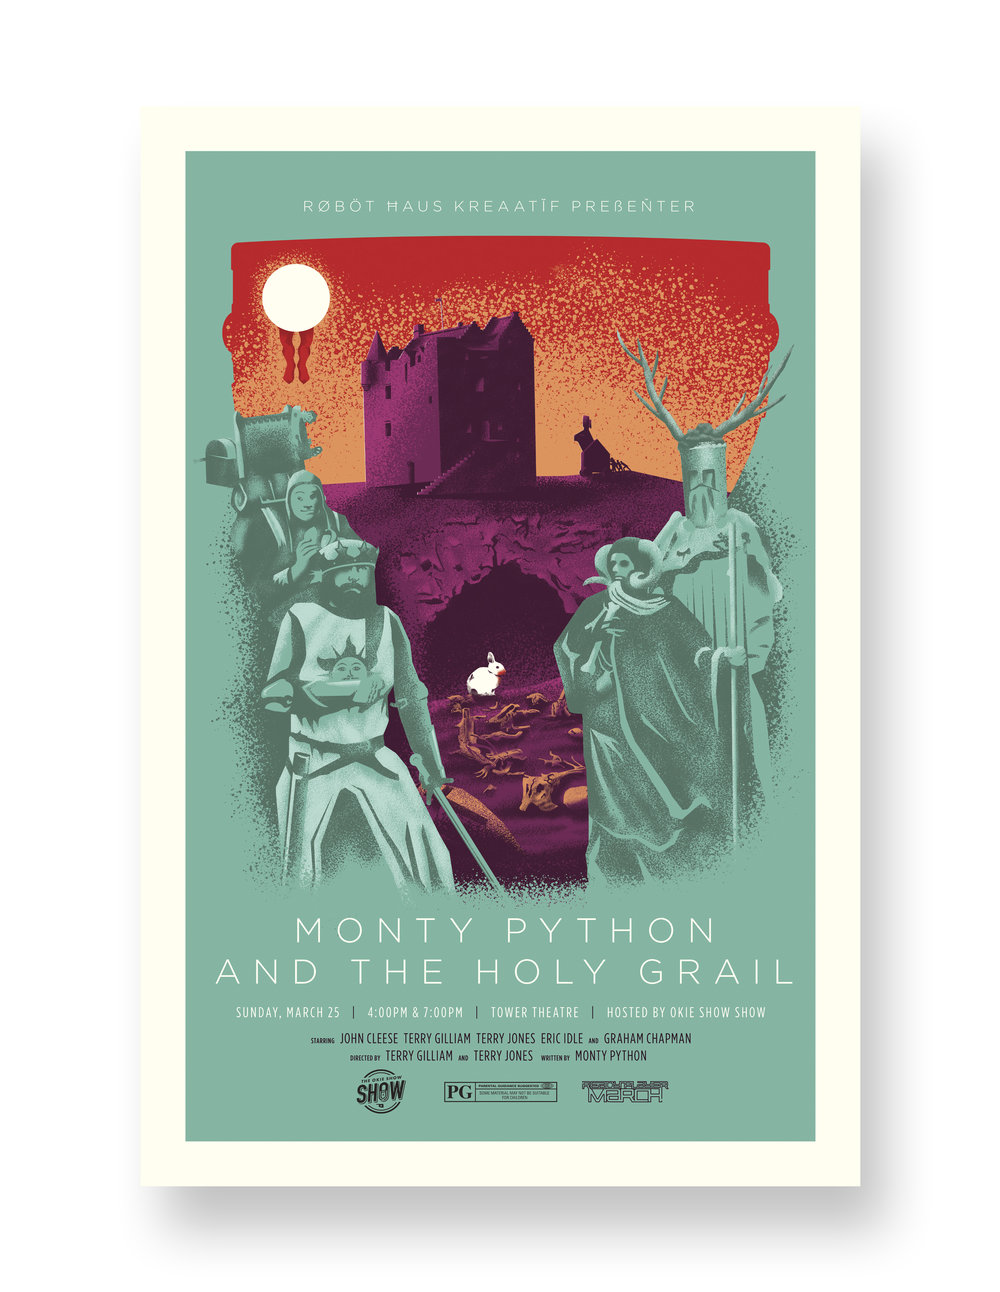 MONTY PYTHON AND THE HOLY GRAIL TOWER THEATRE VARIANT